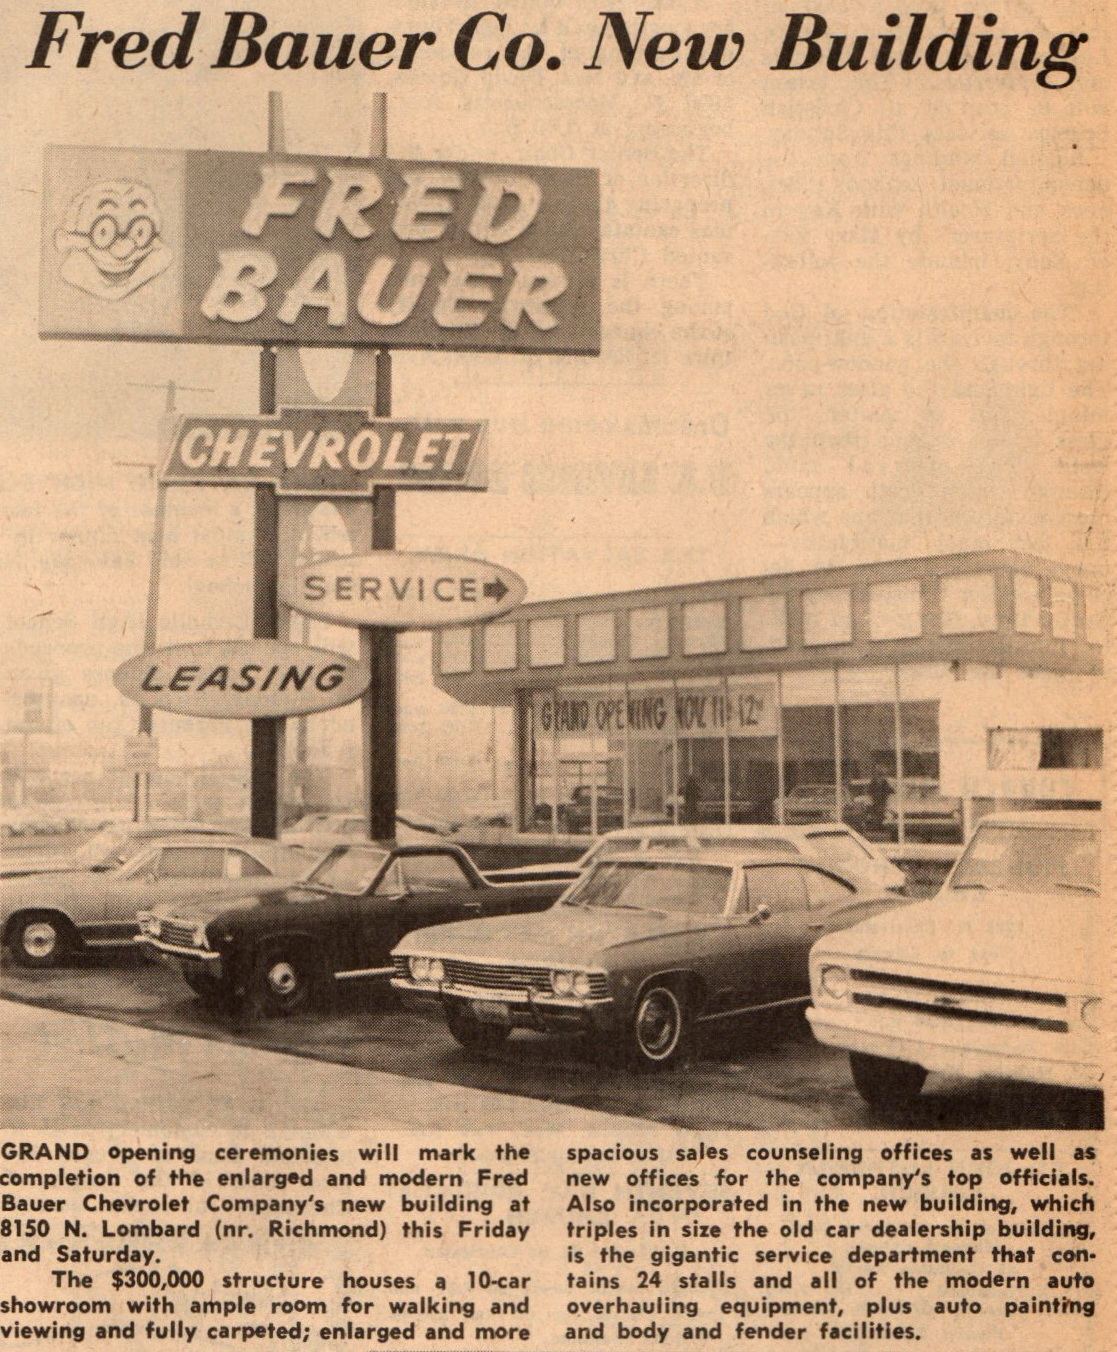 fred-bauer-8150-n-lombard-new-store-nov-1966-01